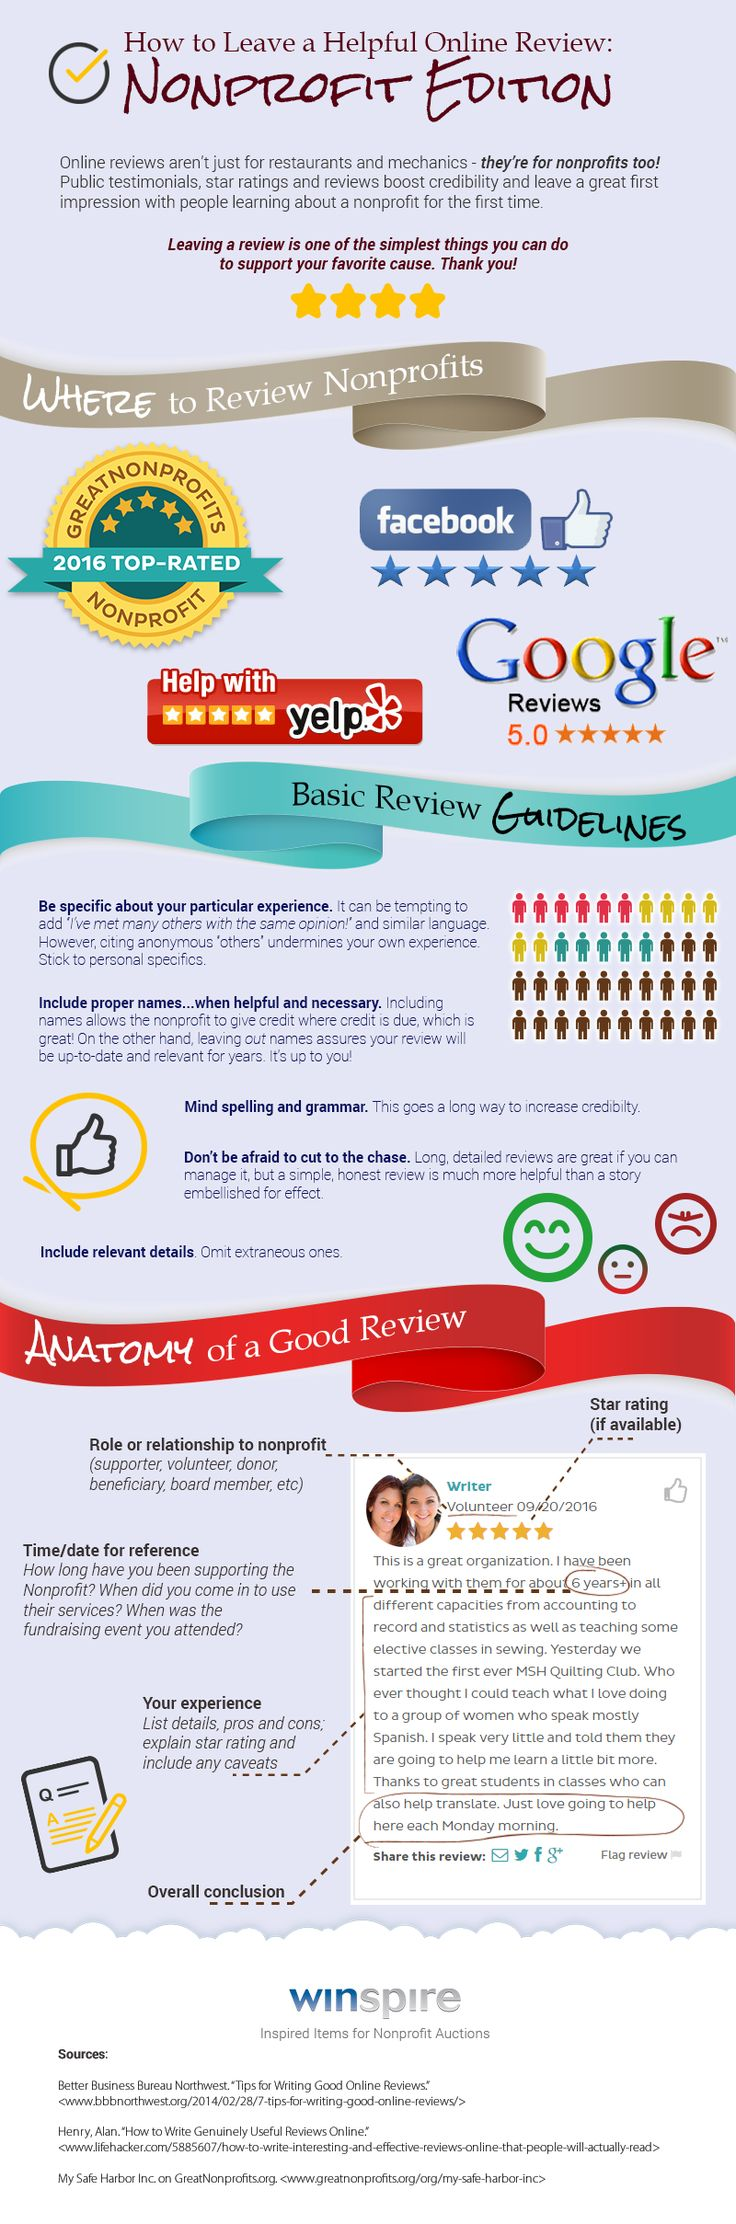 Increasingly potential donors are looking up nonprofits' credibility online - so it's important to get GOOD helpful reviews from supporters. Try providing guidelines or suggestions for a helpful review to supporters, like this infographic detailing the most popular sites and basic review etiquette.